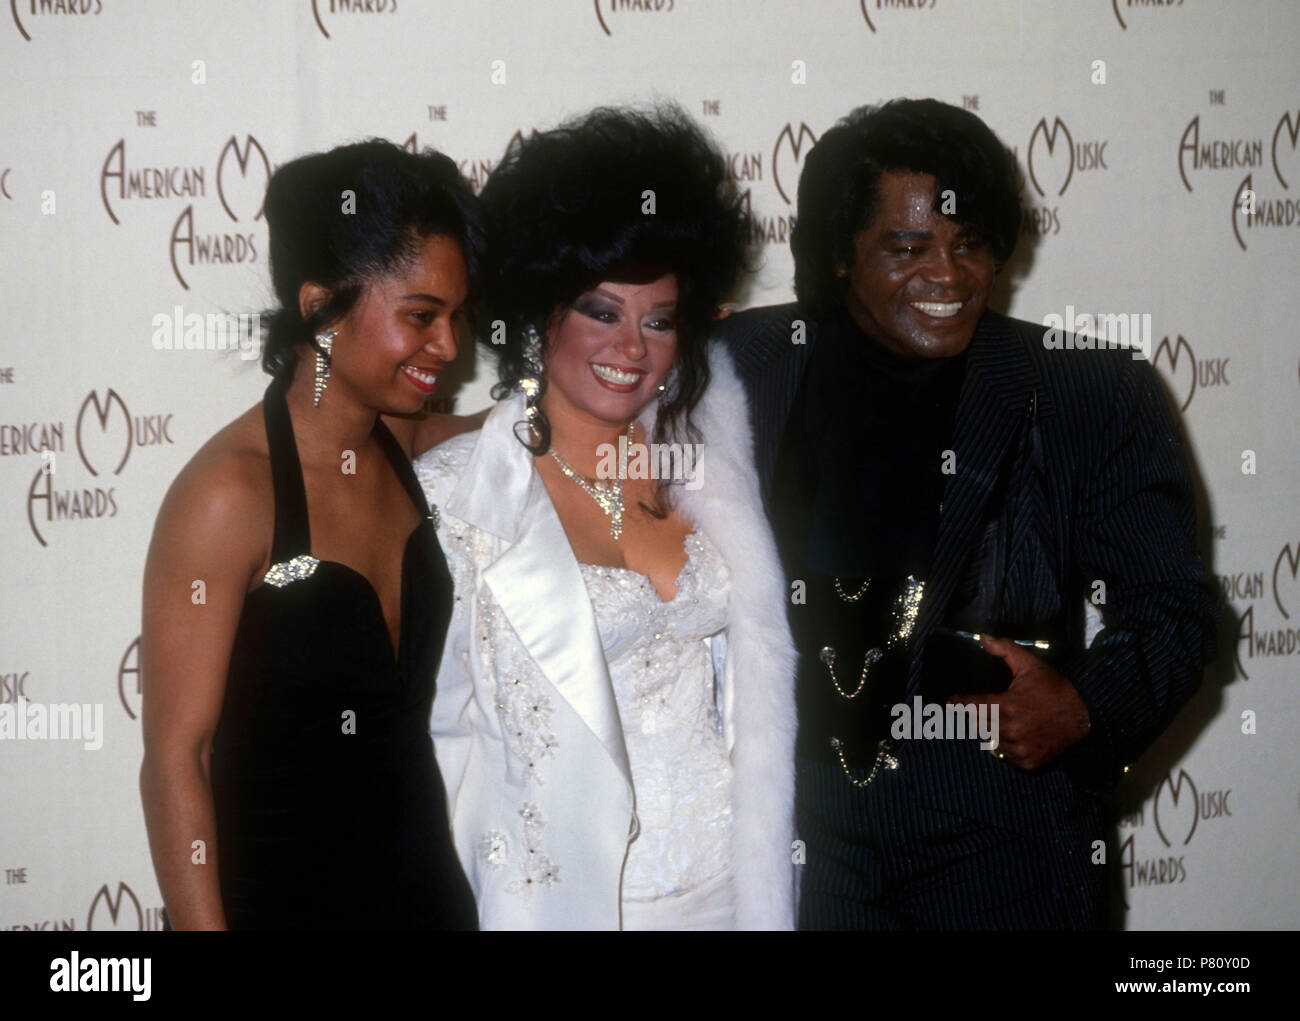 los angeles ca january 27 singer james brown r and